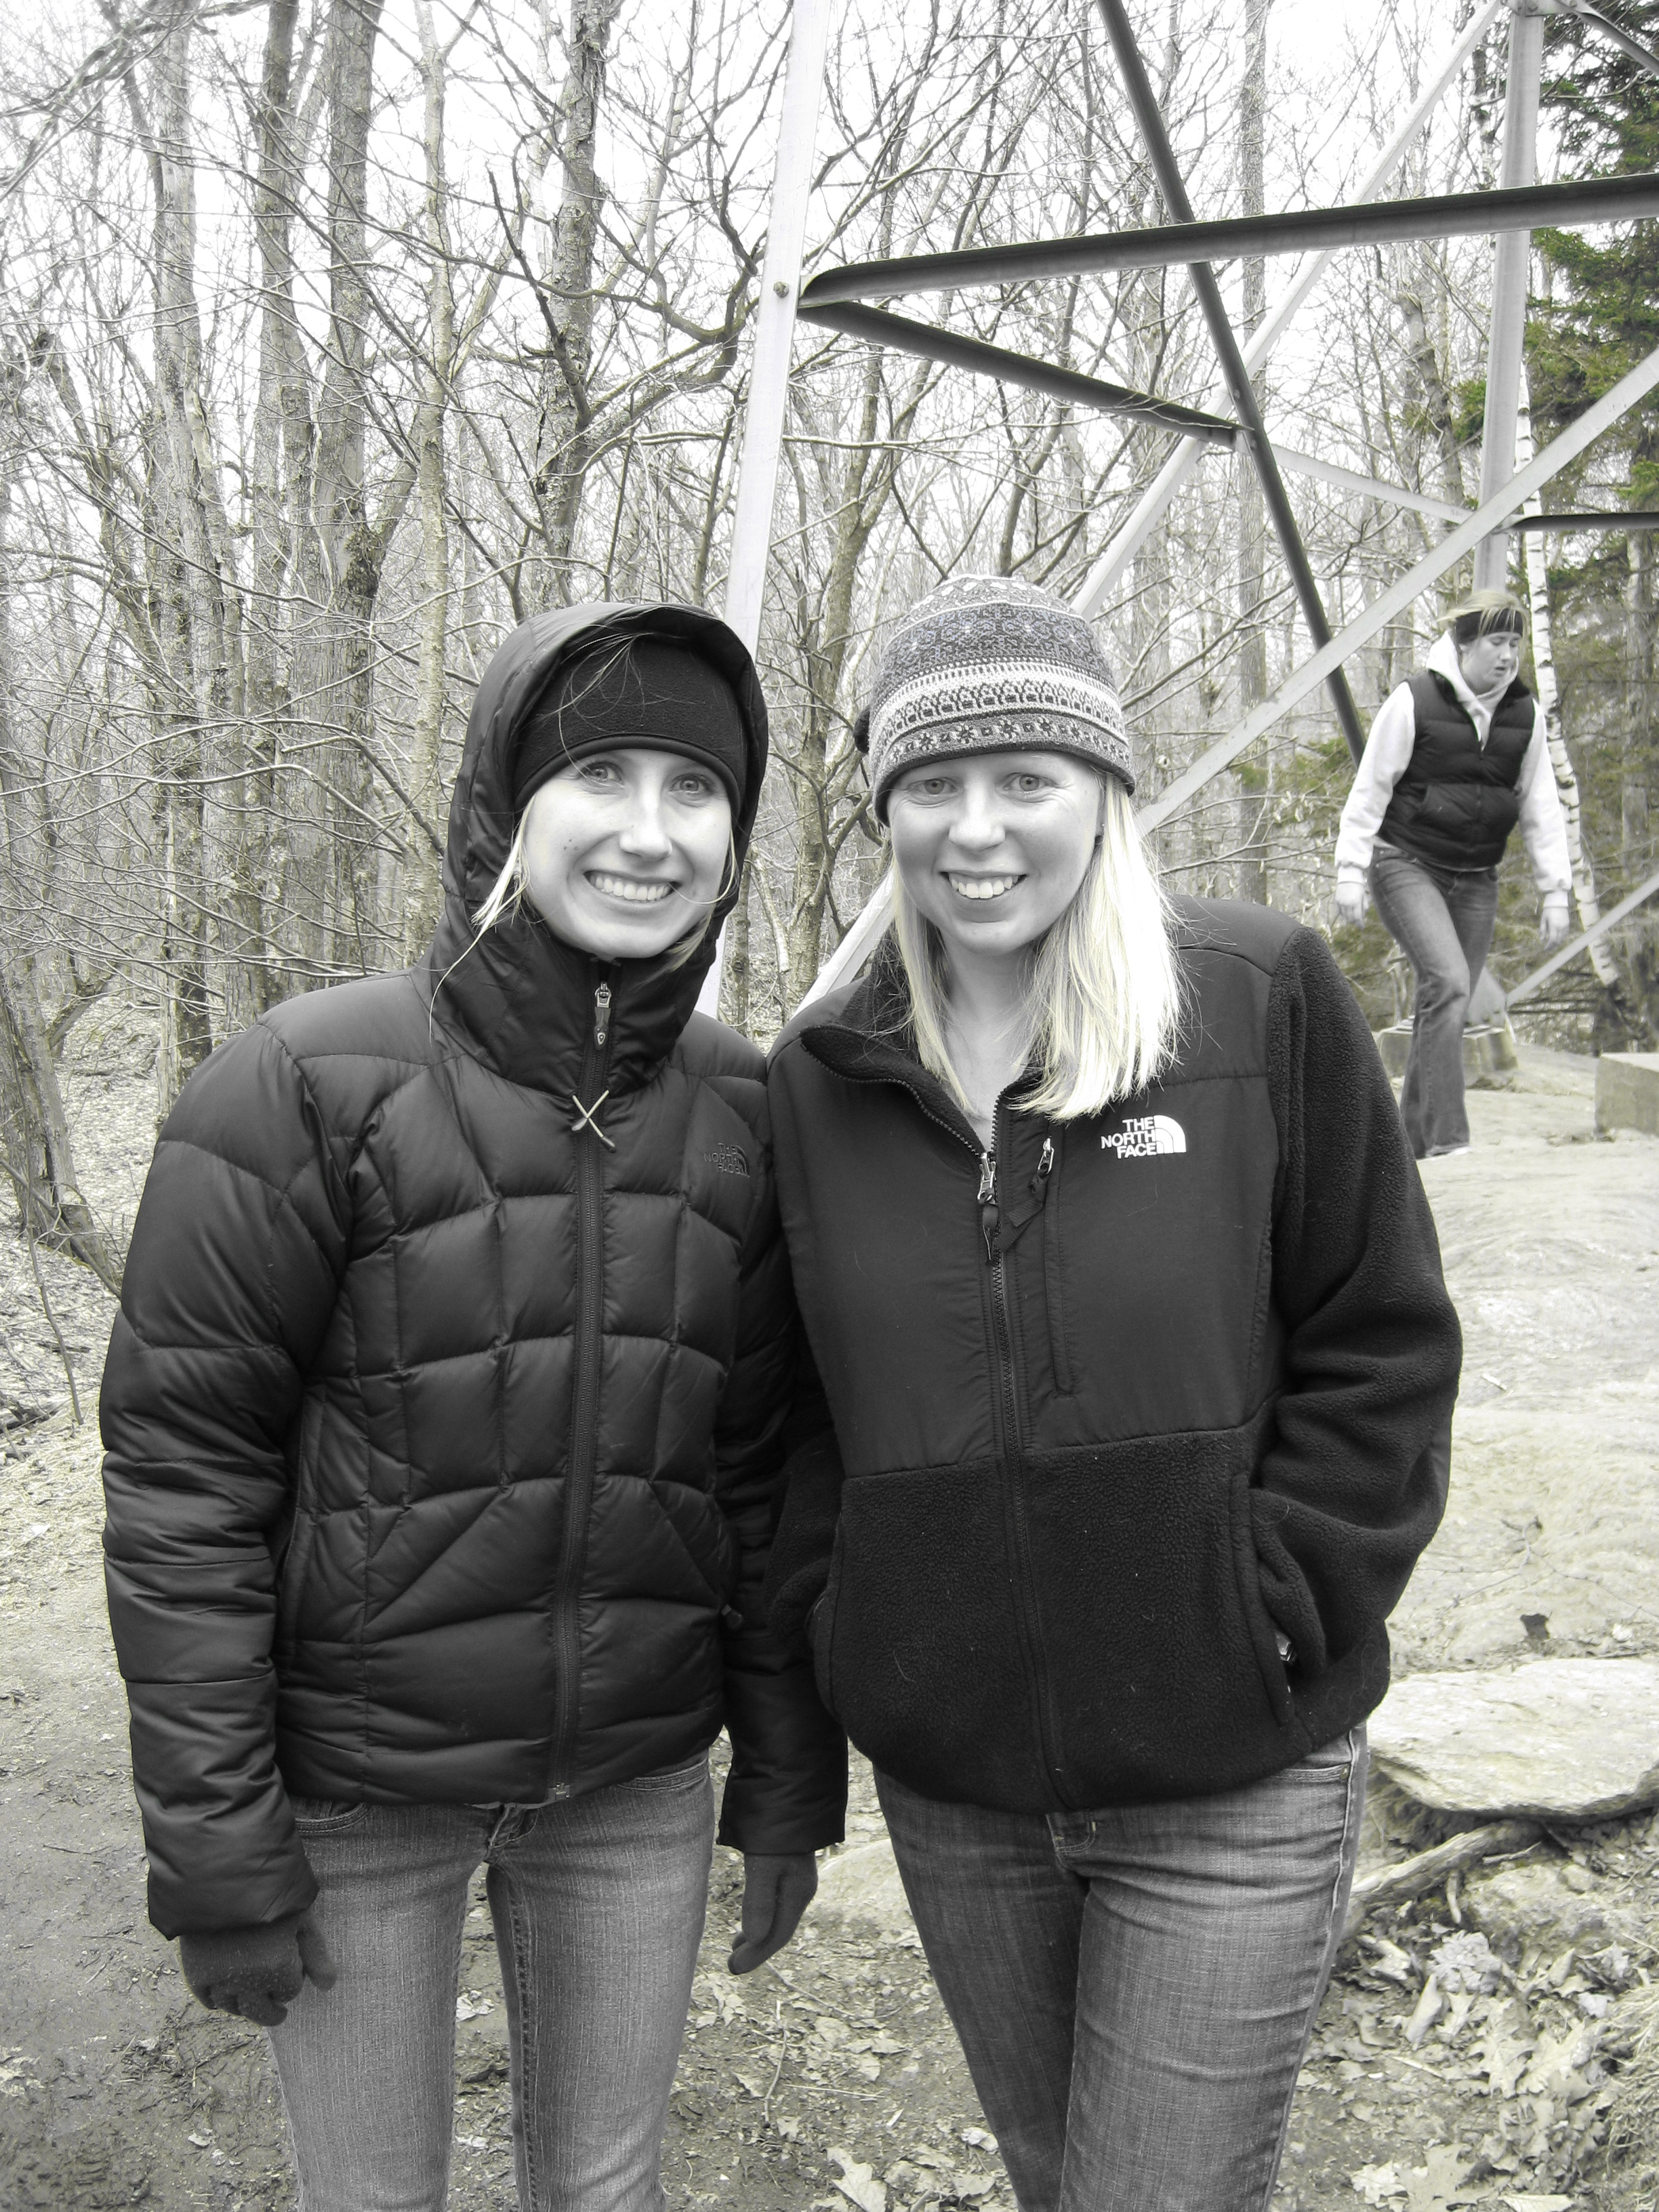 Schweitzer Fellows Alissa Curda and Liz Killien launched an outdoor education program for underserved youth.